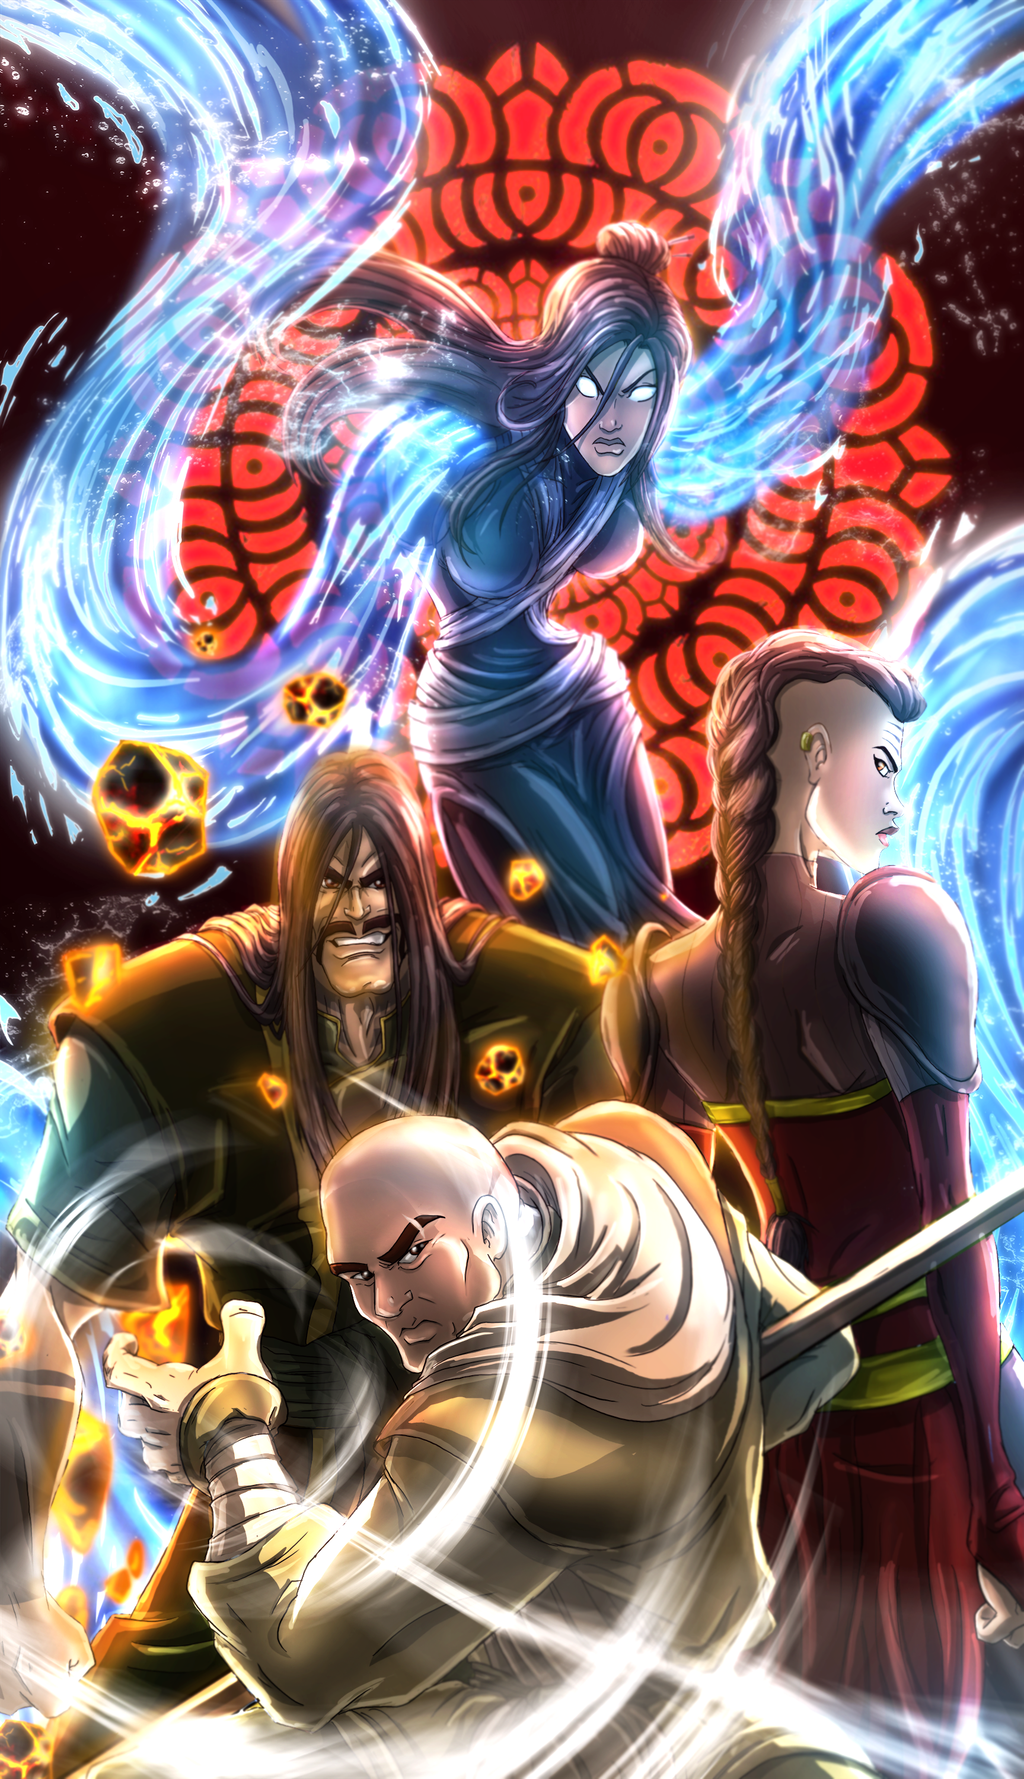 Red Lotus Avatar The Last Airbender The Legend Of Korra Know Your Meme